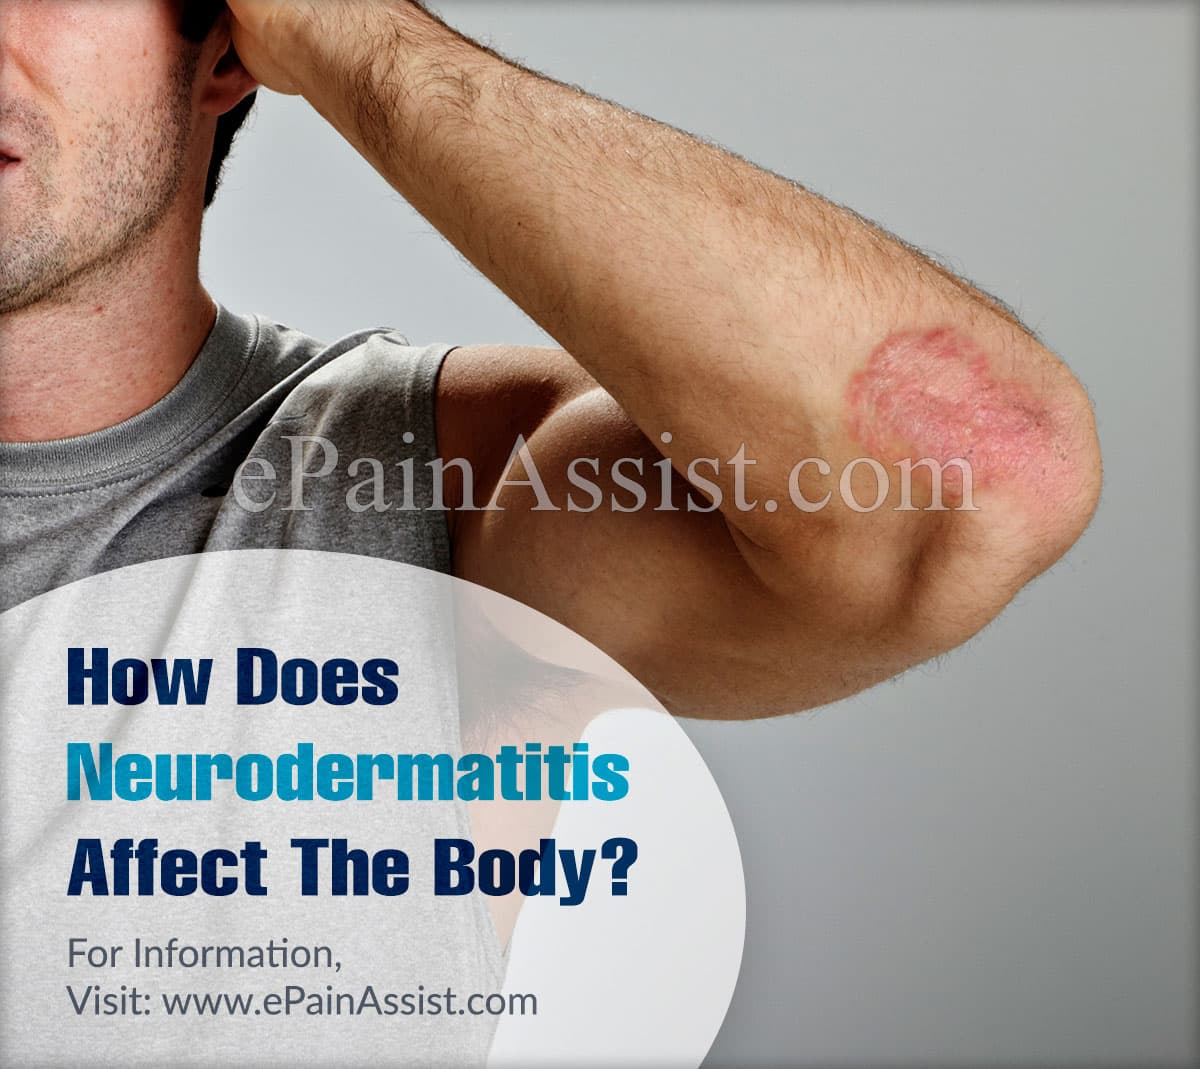 How Does Neurodermatitis Affect The Body?